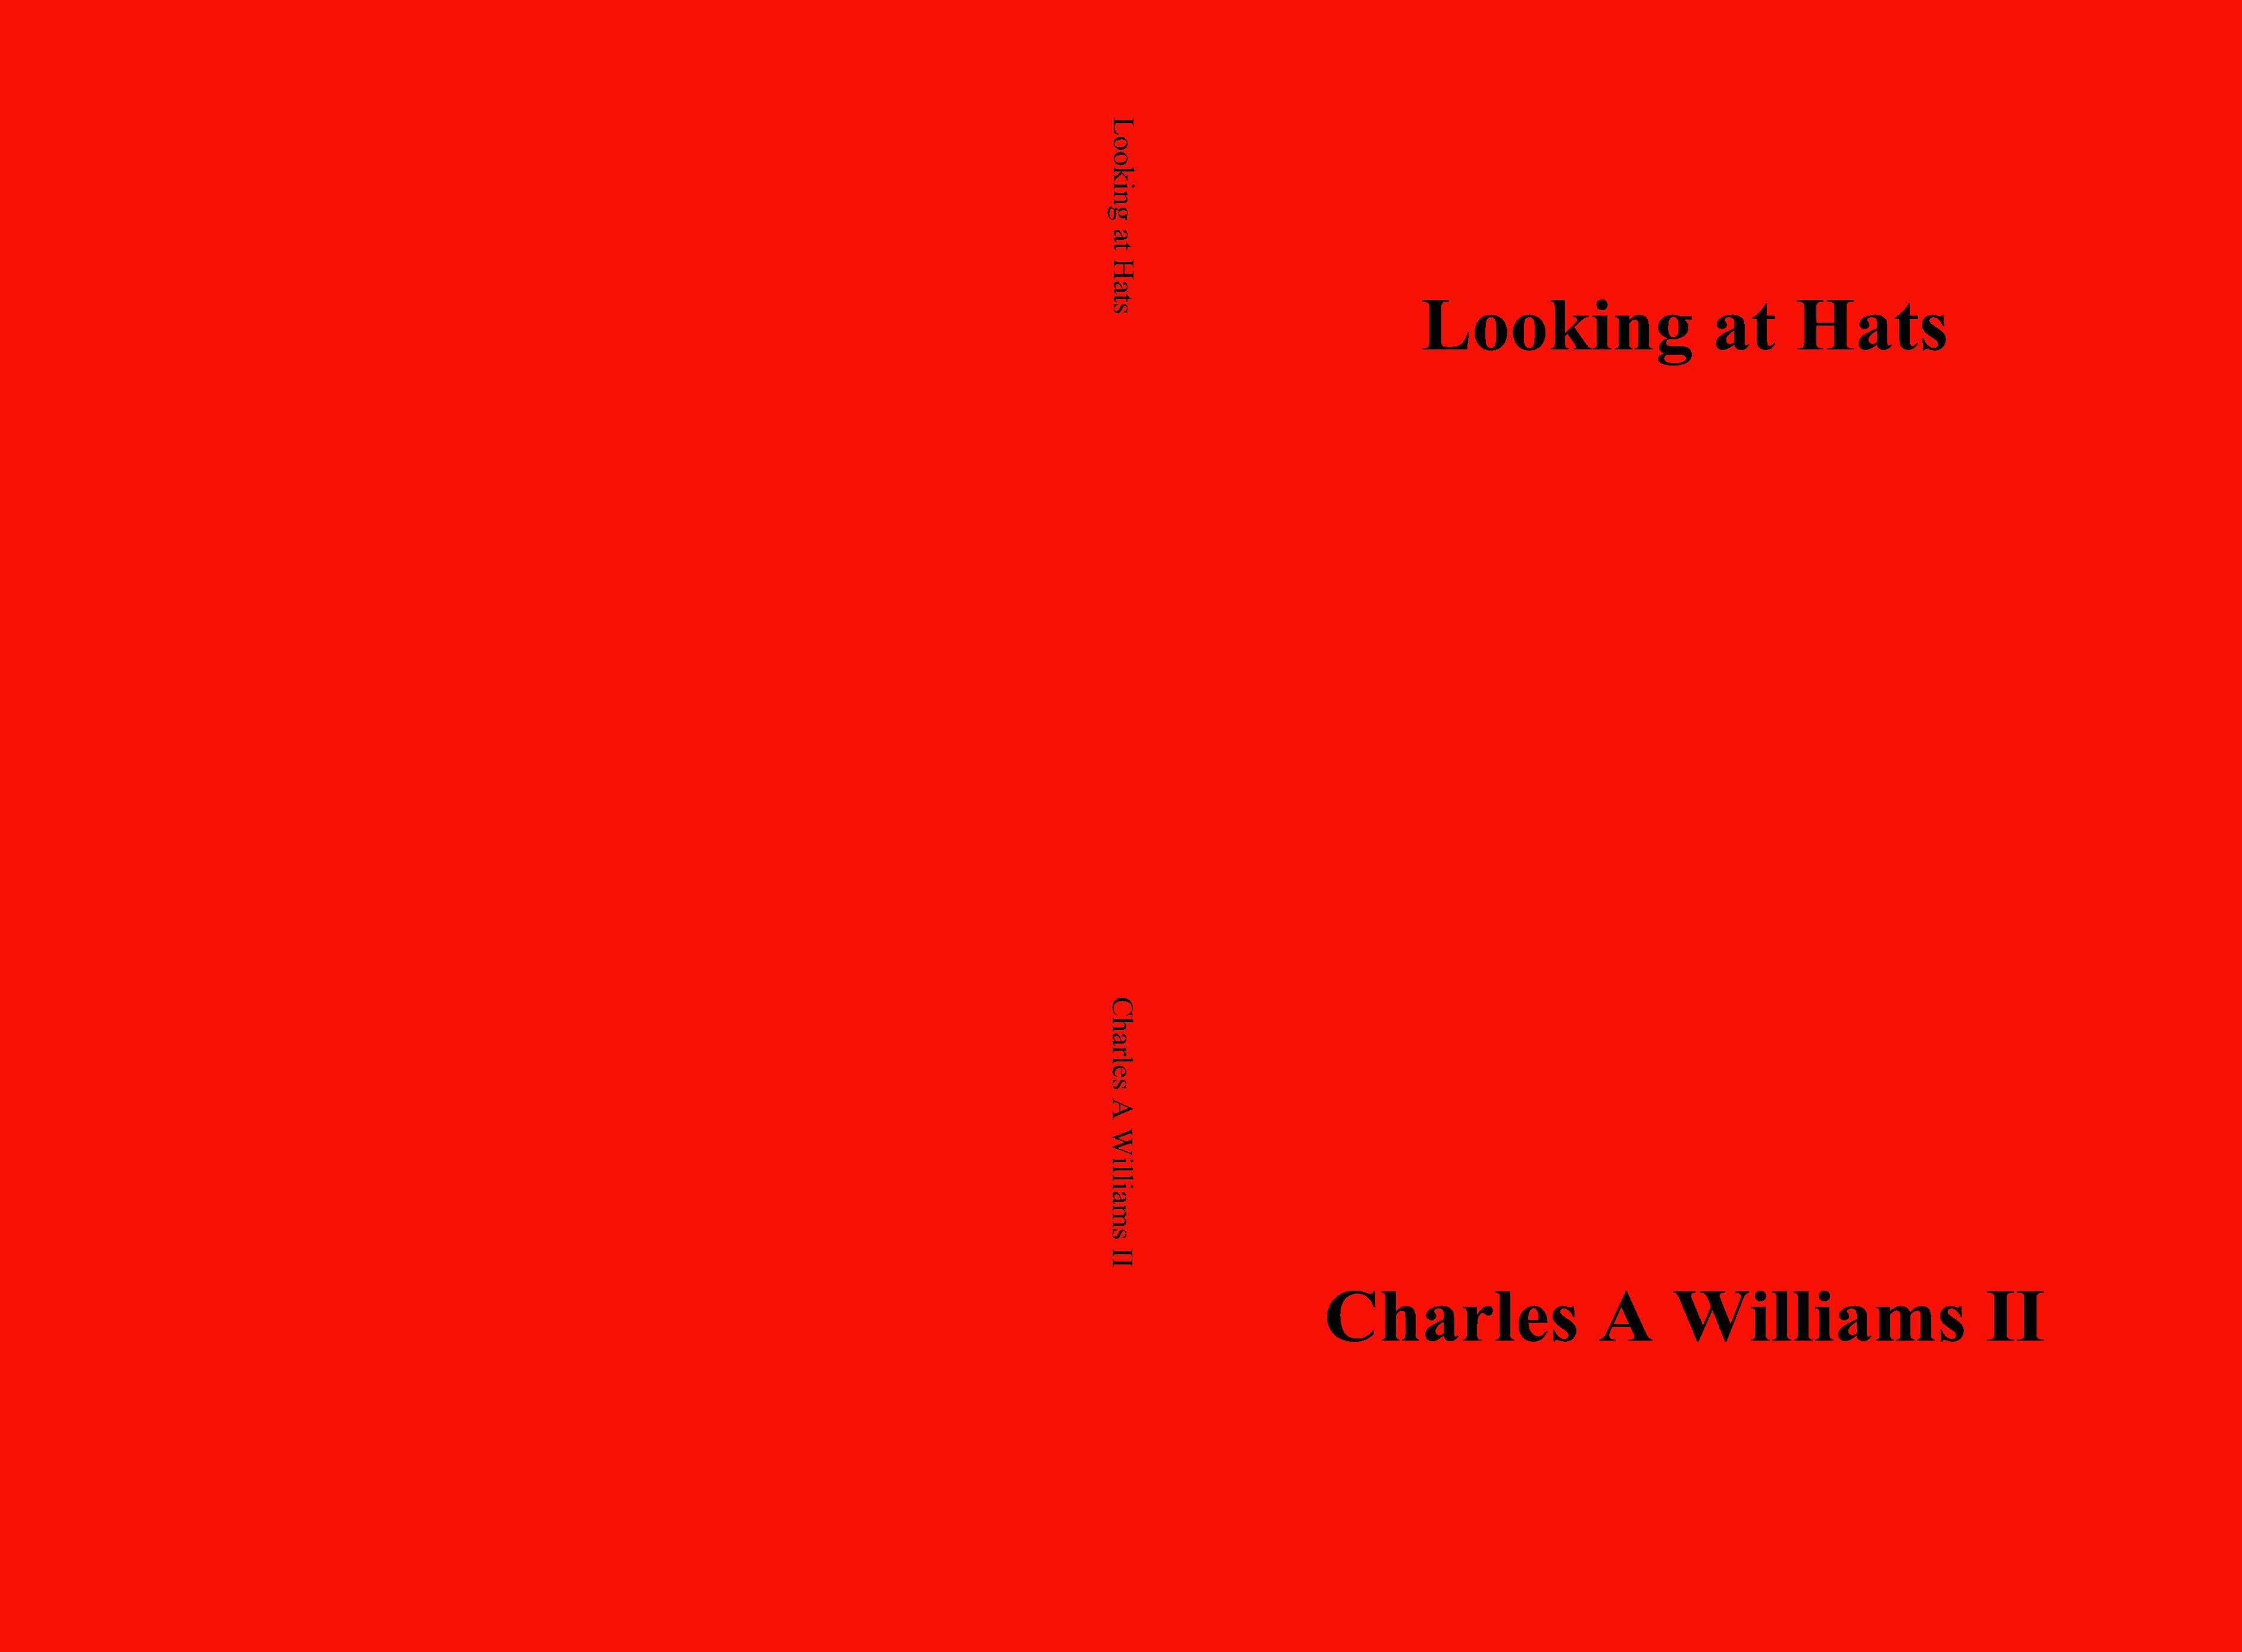 Looking at Hats cover image